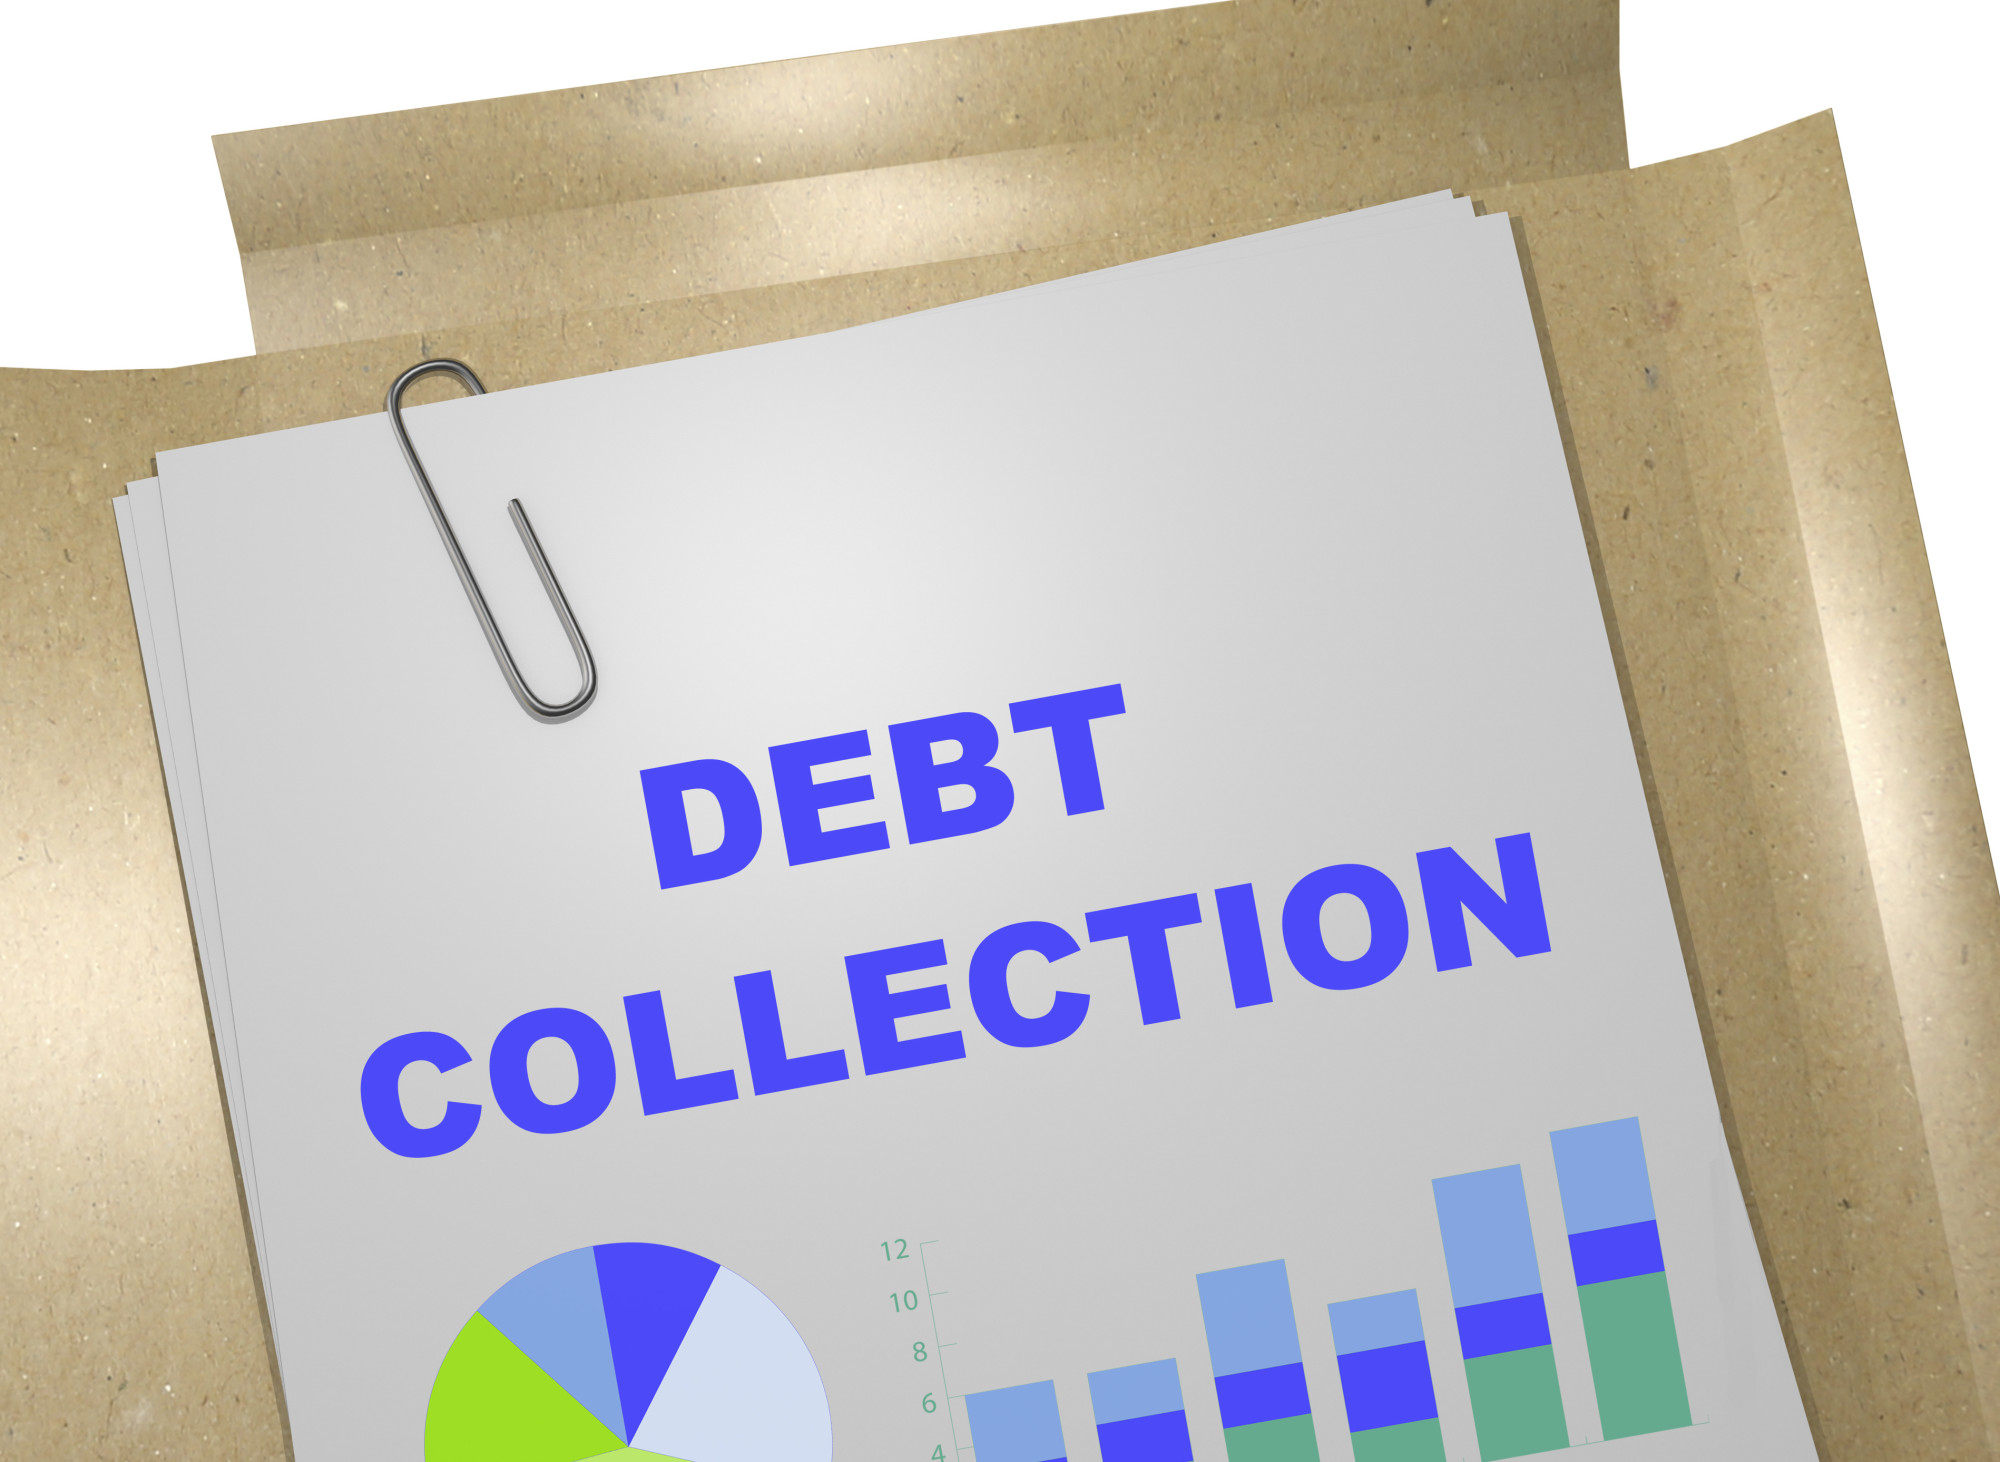 Debt Collection Visualized